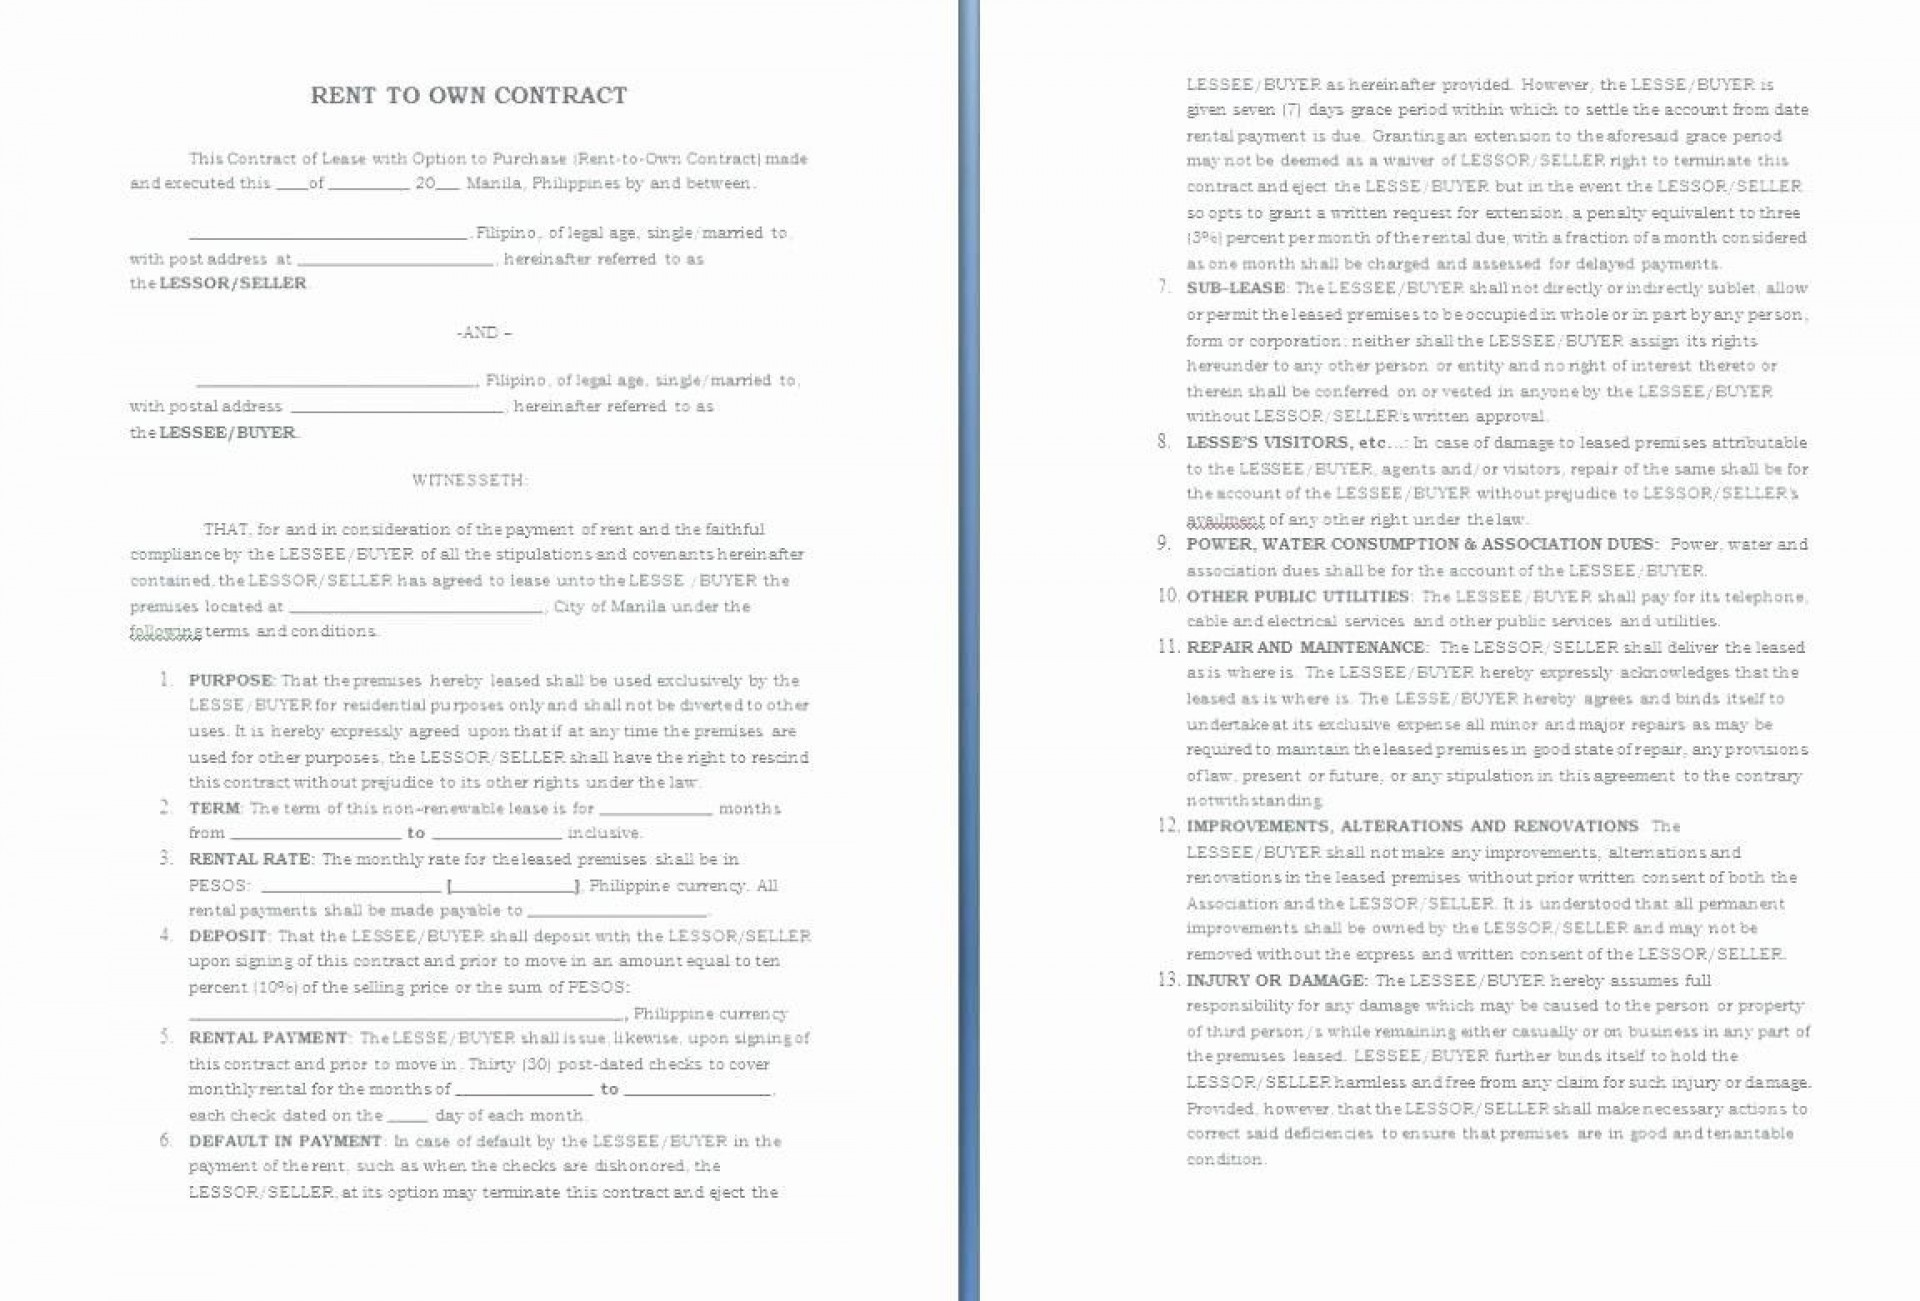 001 Magnificent Rent To Own Contract Template Philippine High Resolution  Philippines Sample1920